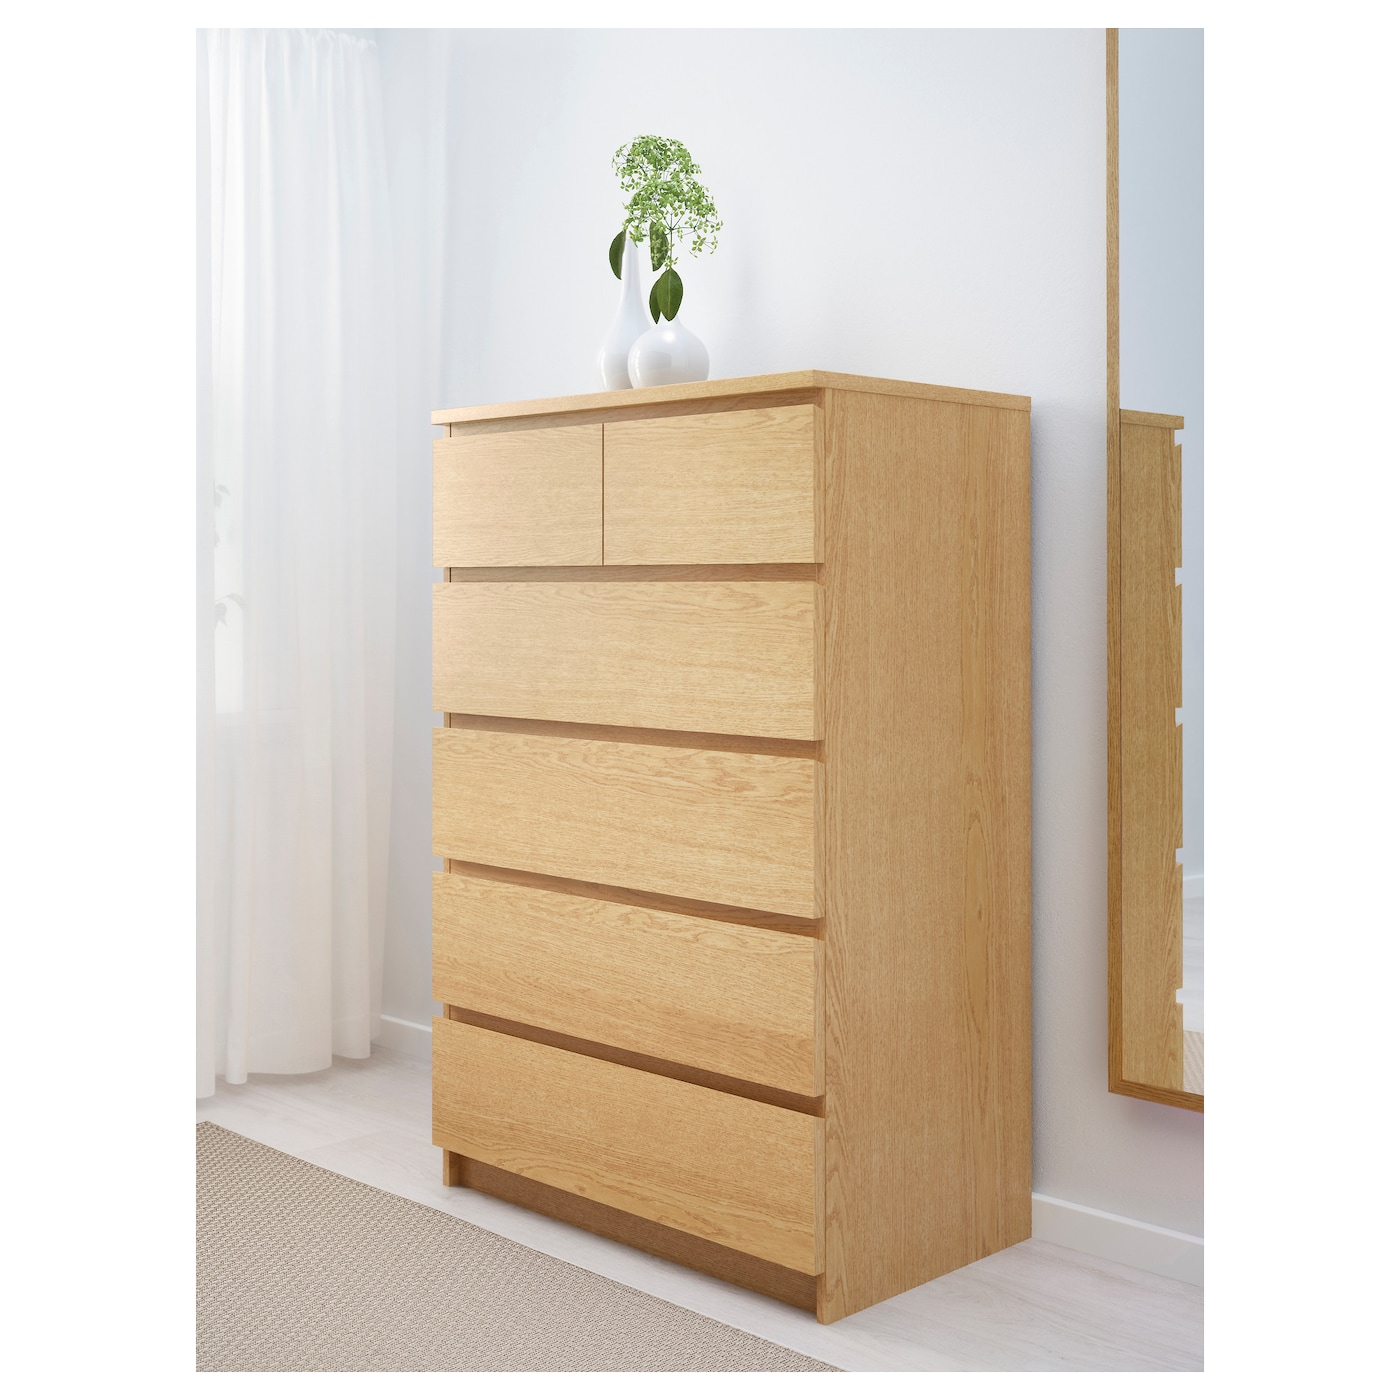 Ikea Malm Chest Of Drawers ~ Malm chest of drawers oak veneer cm ikea